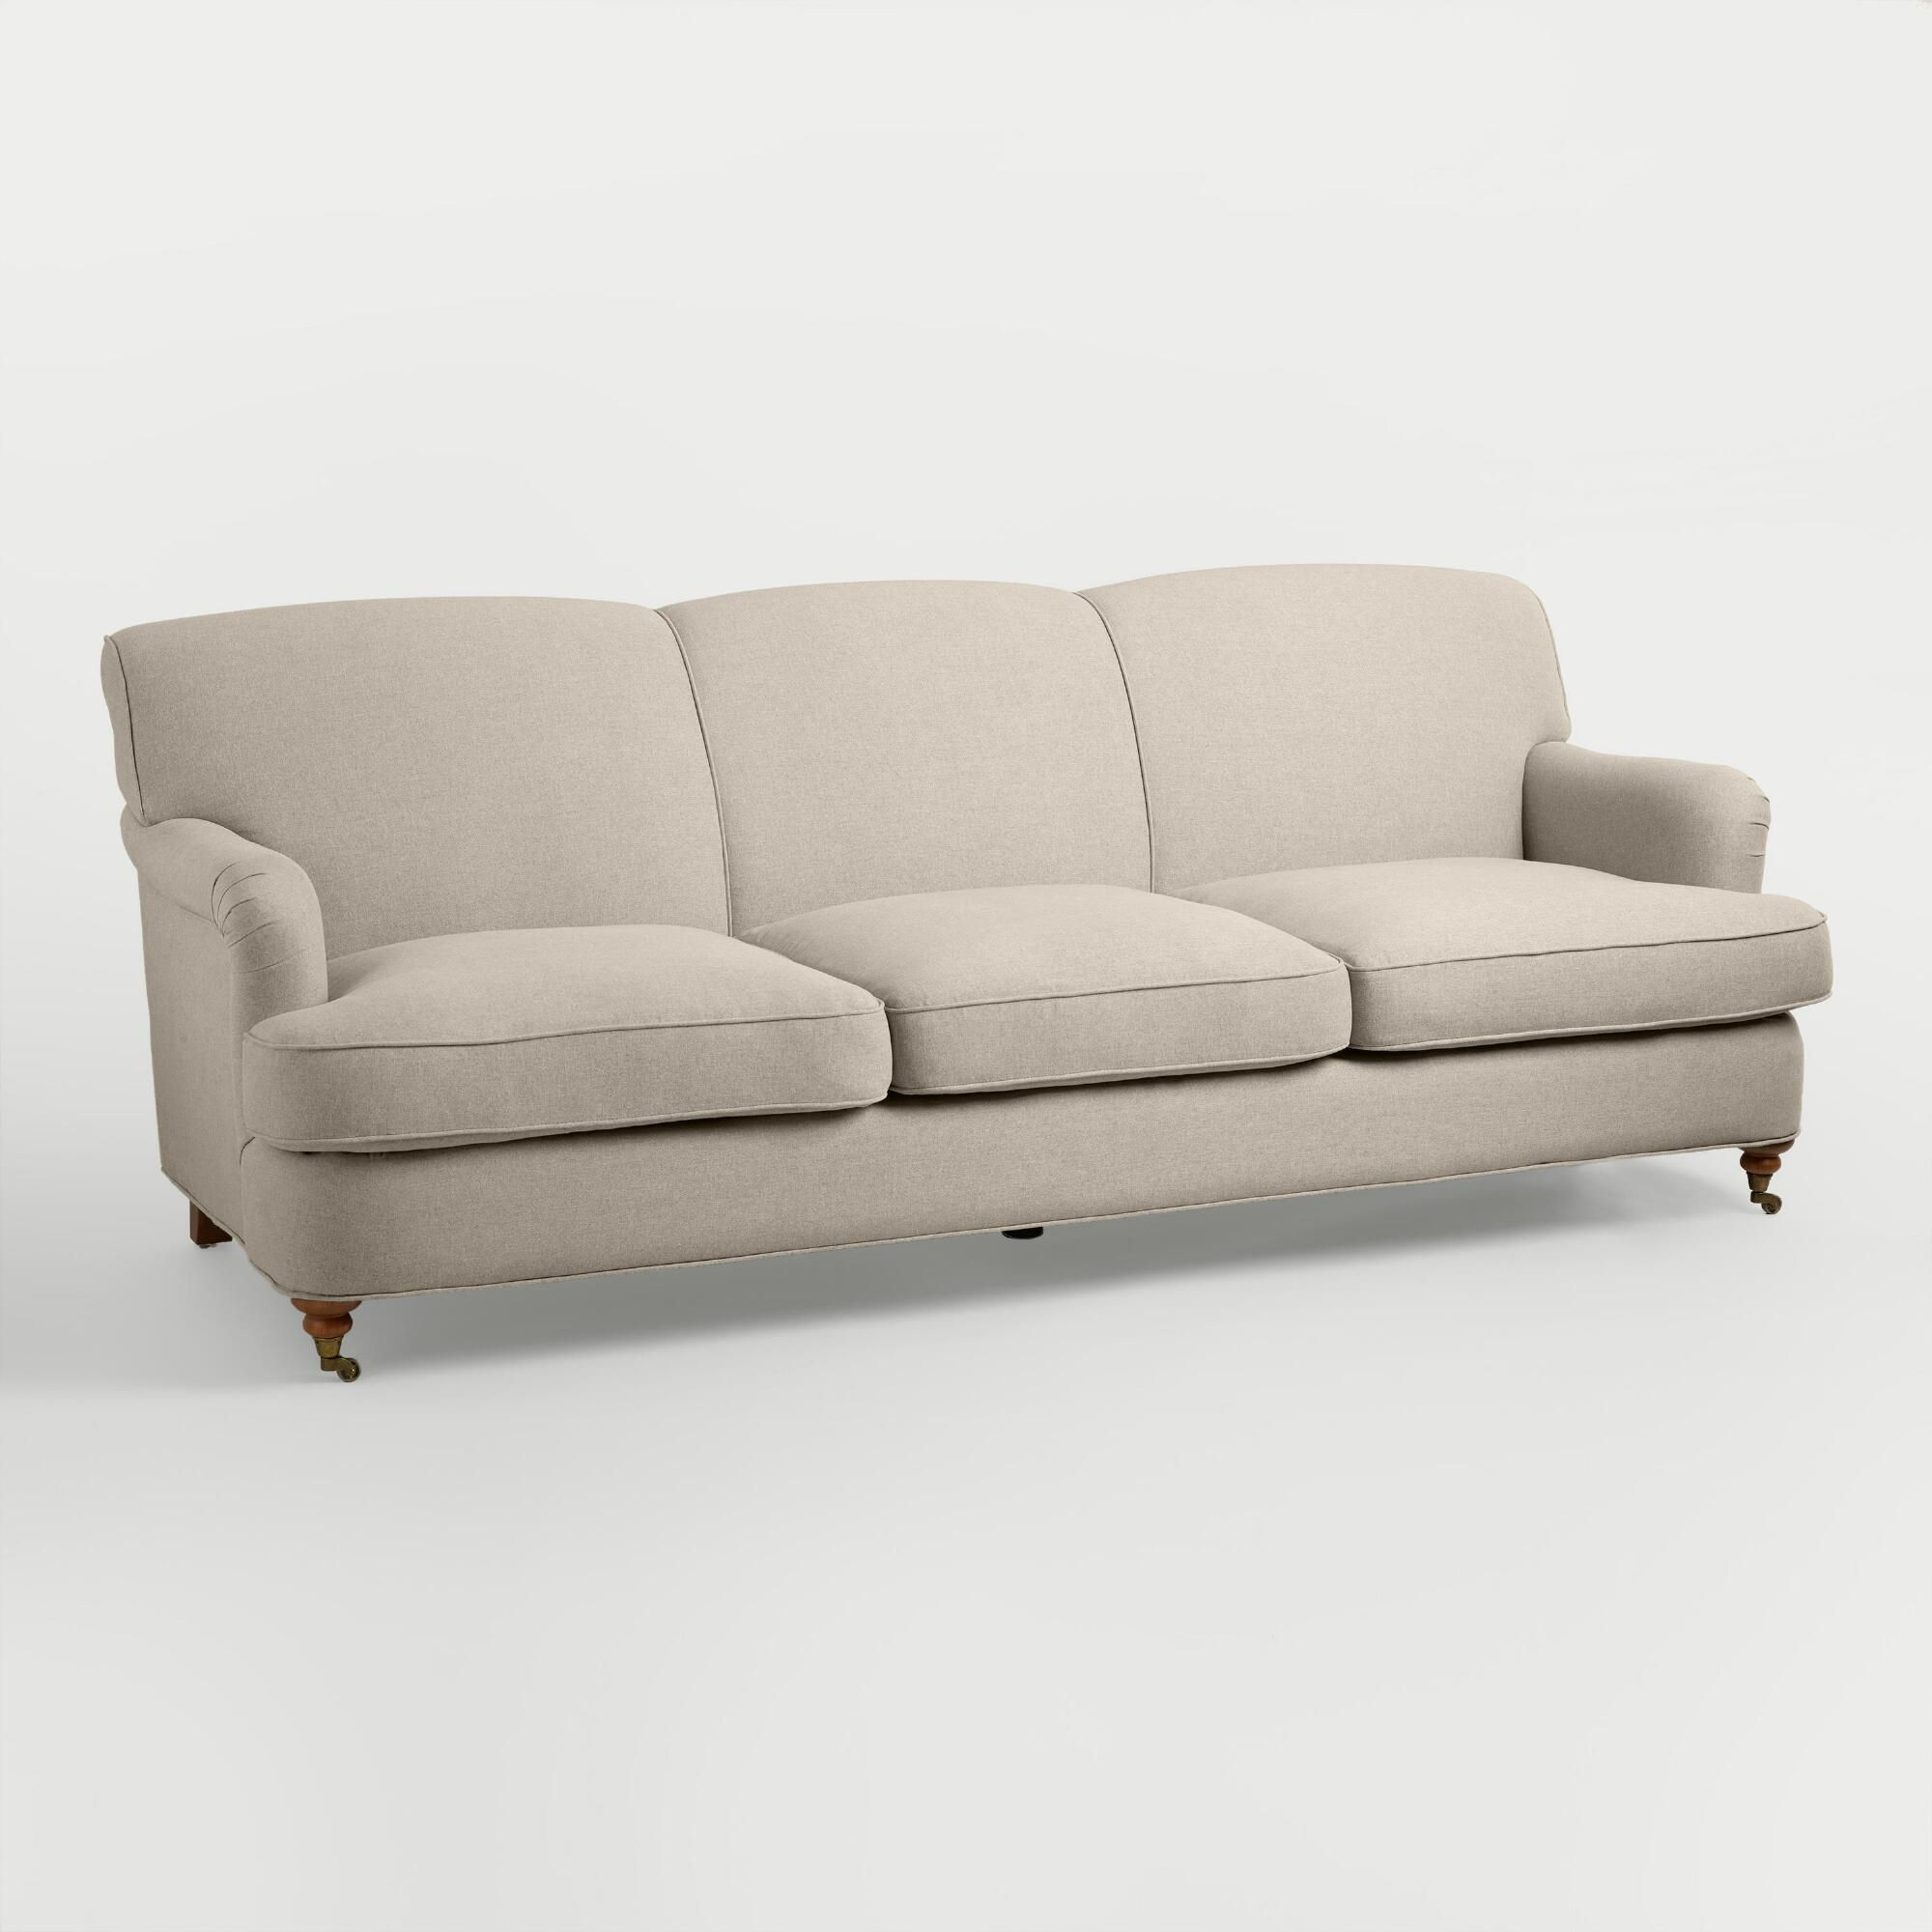 Oatmeal Sofa Sofas Under 600 Pounds English Roll Arm Shelton Brown Gray Natural By World Market